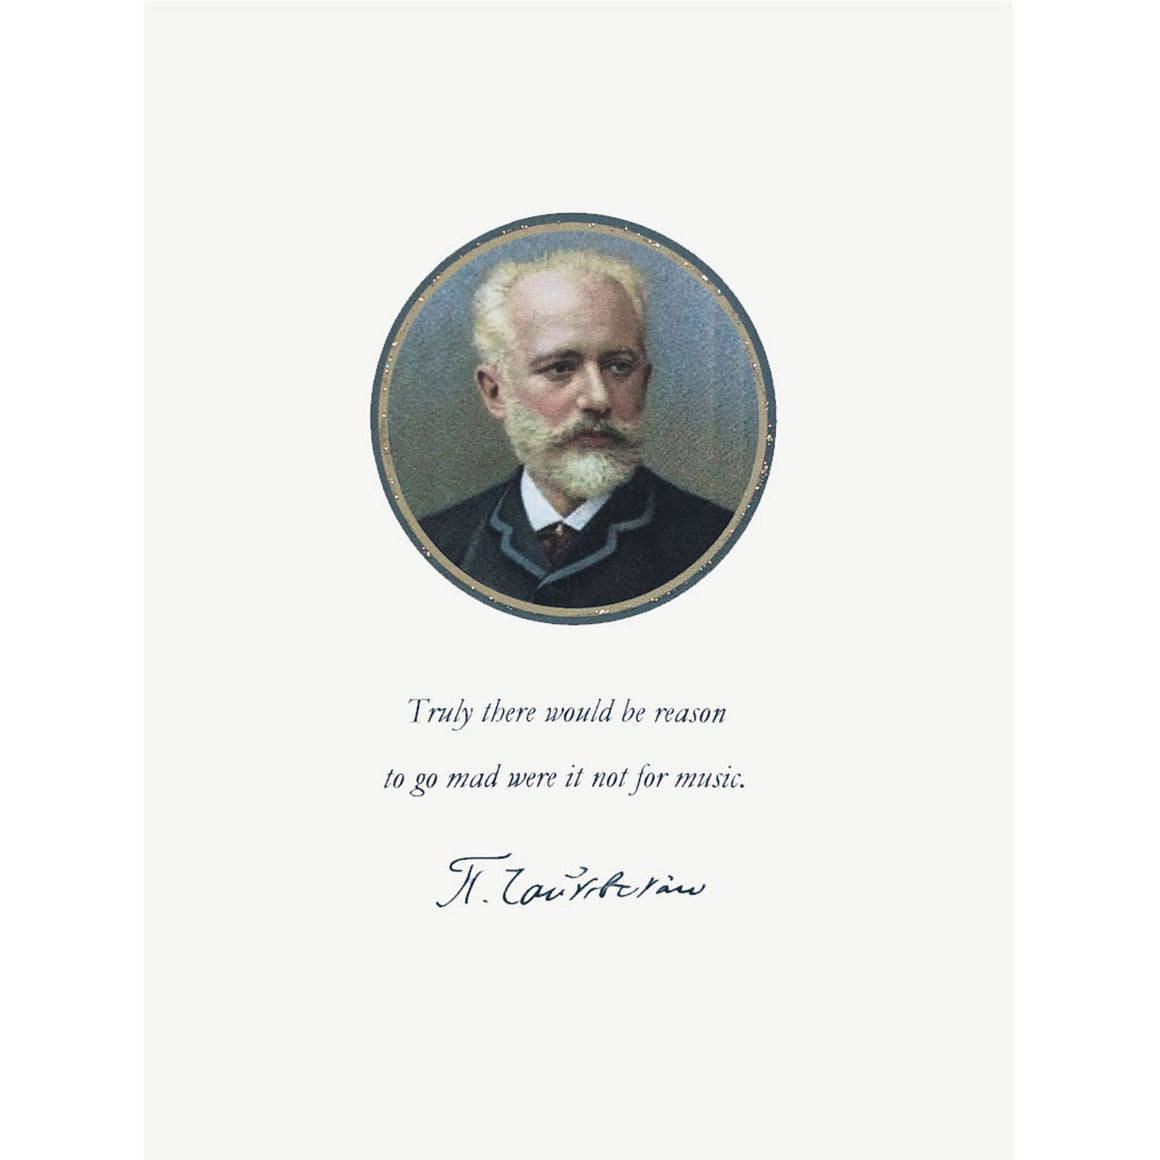 Tchaikovsky Greeting Card, Lumia Designs